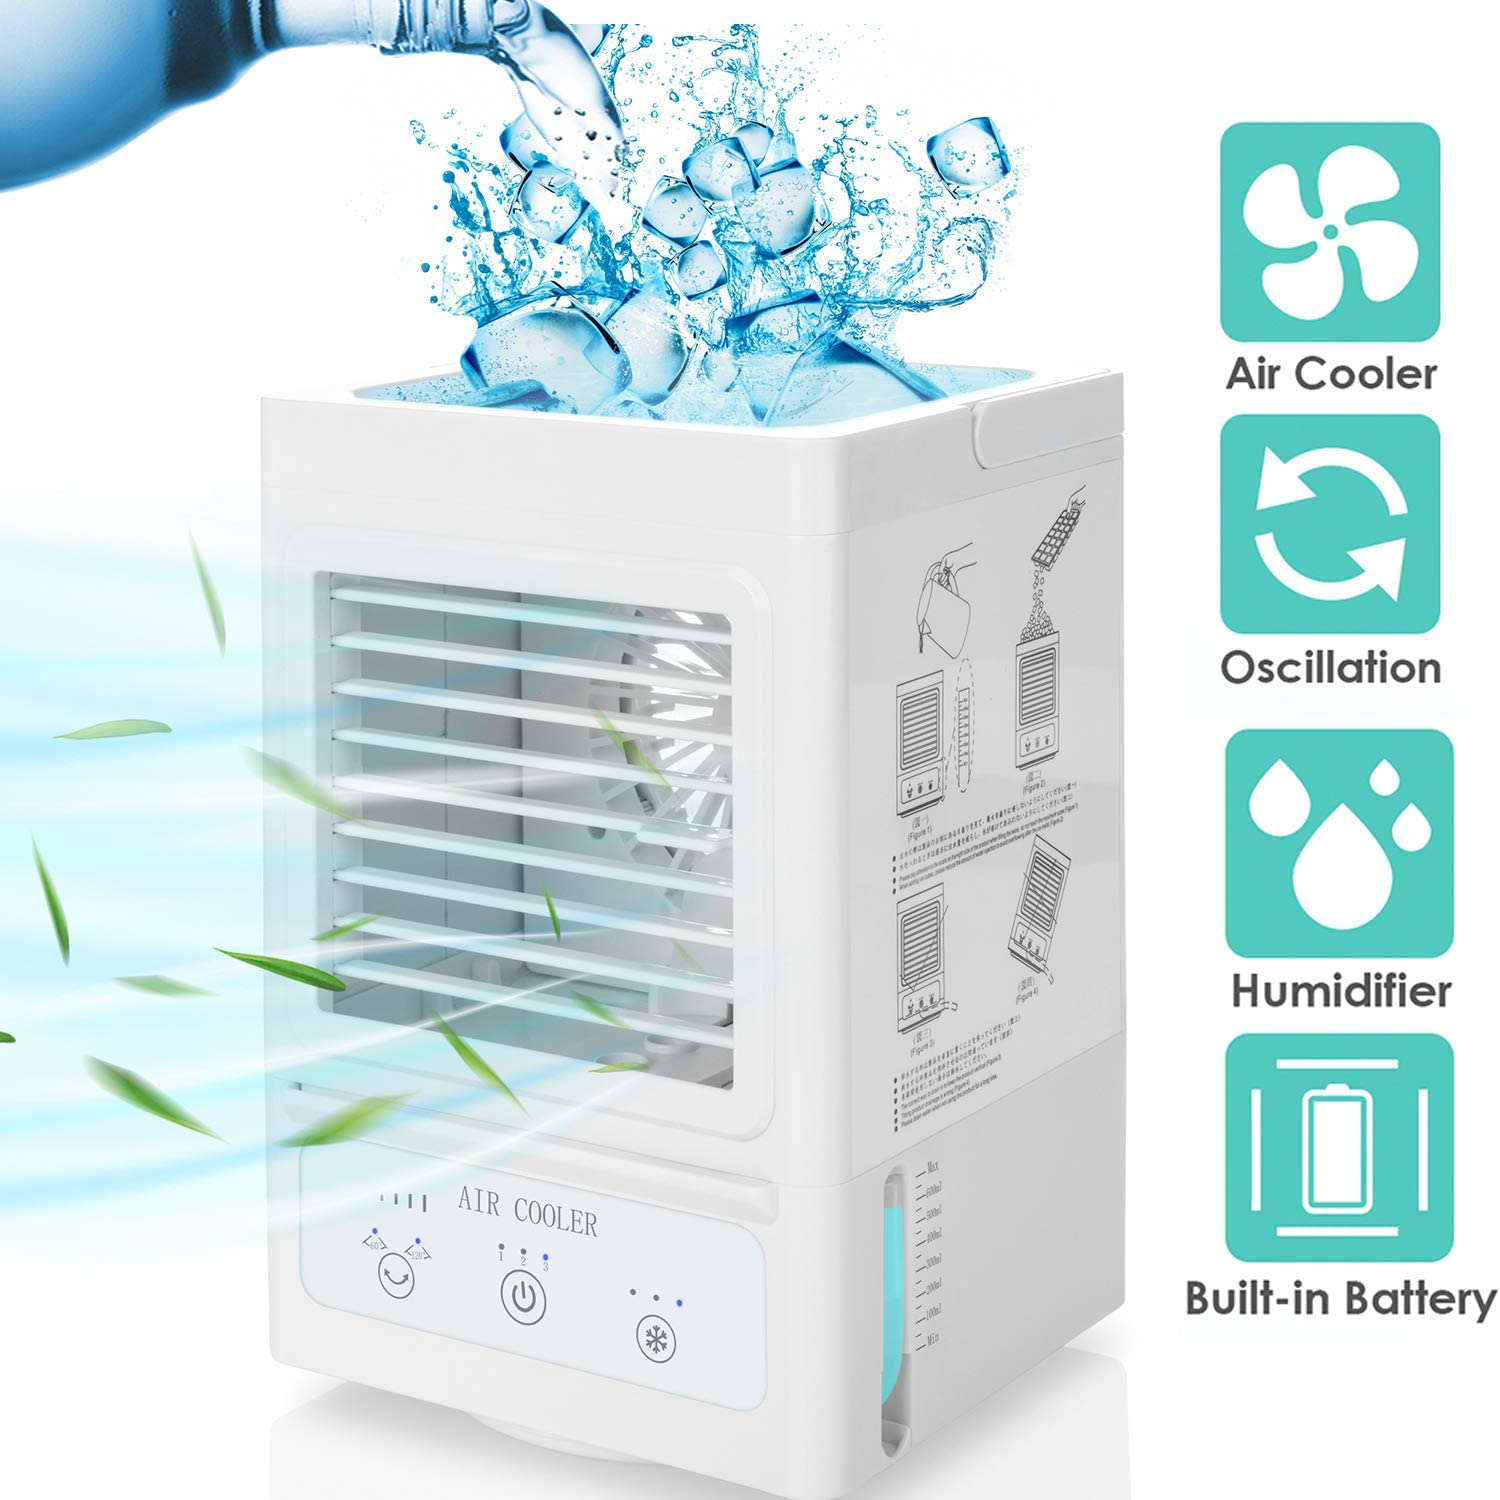 Portable Air Conditioner, 5000mAh Rechargeable Battery Operated 120°Auto Oscillation Personal Mini Air Cooler with 3 Wind Speeds, 3 Cooling Levels, Perfect for Office Desk, Dorm, Bedroom and Outdoors